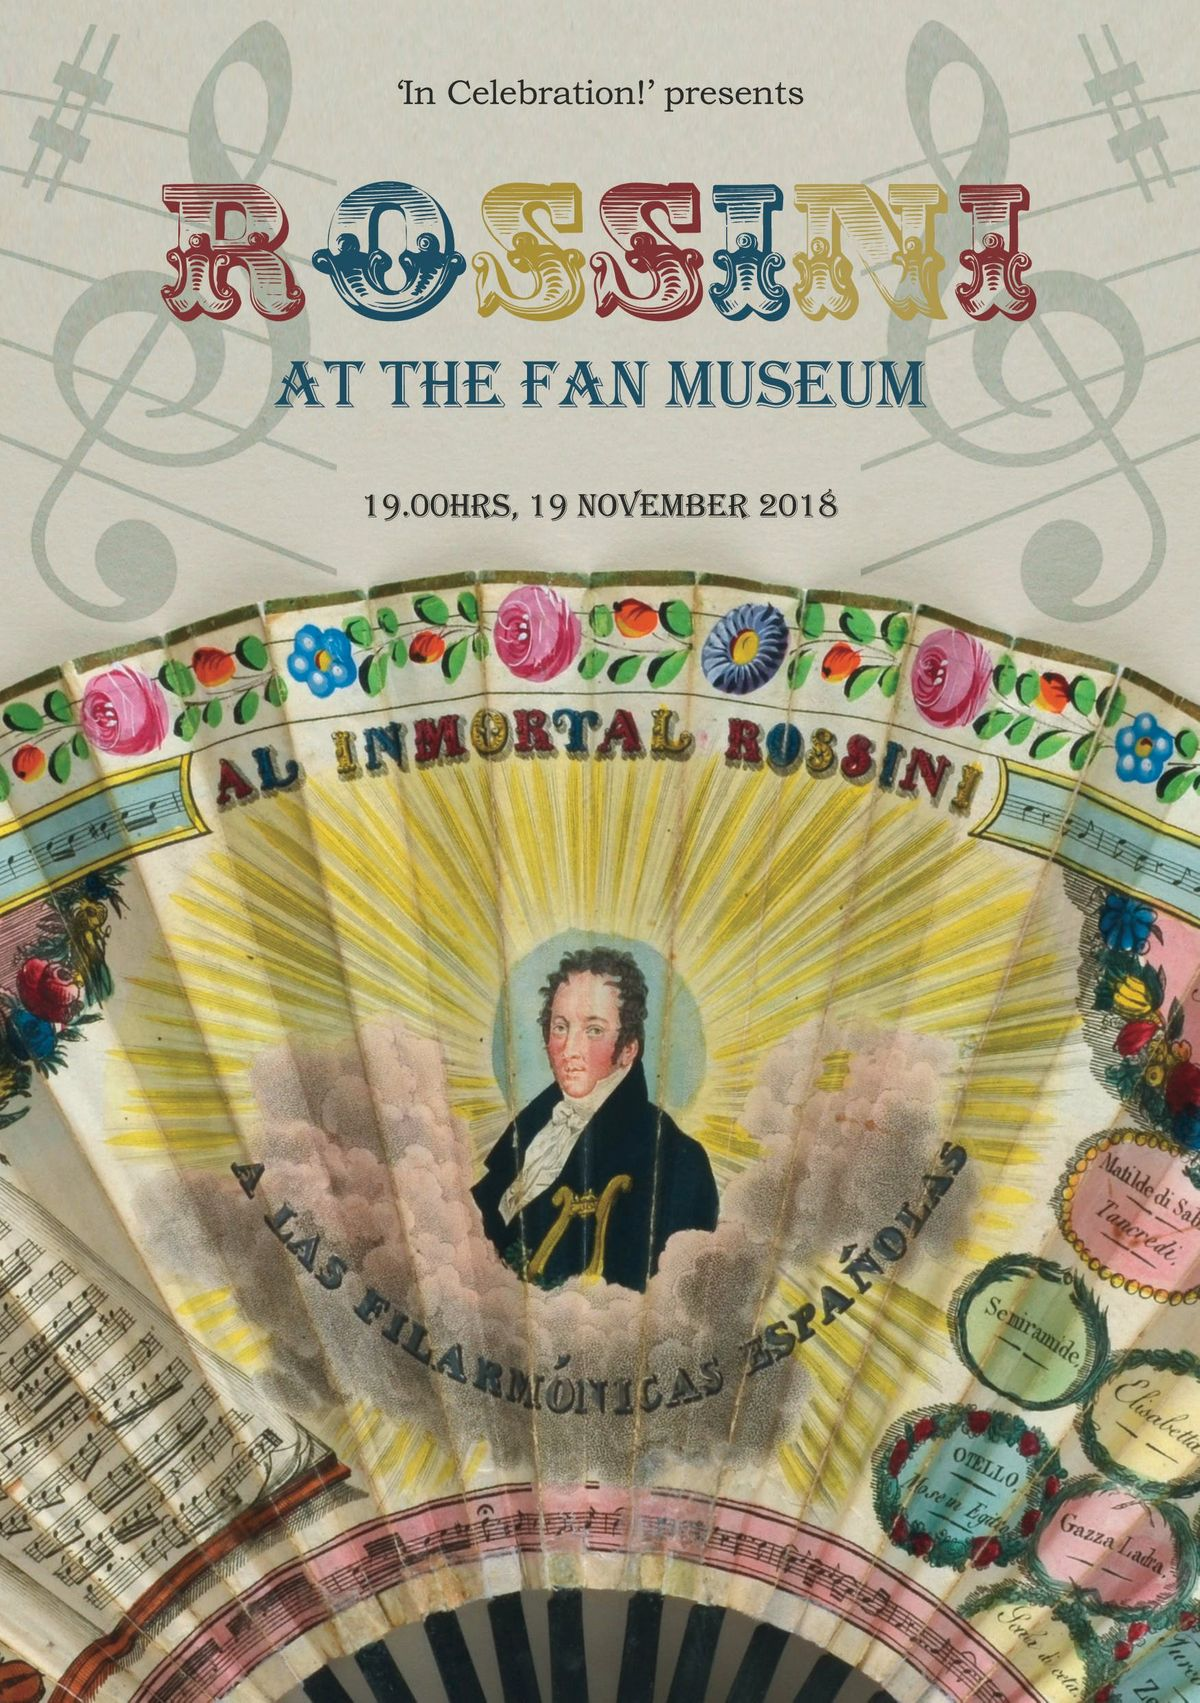 Rossini at The Fan Museum